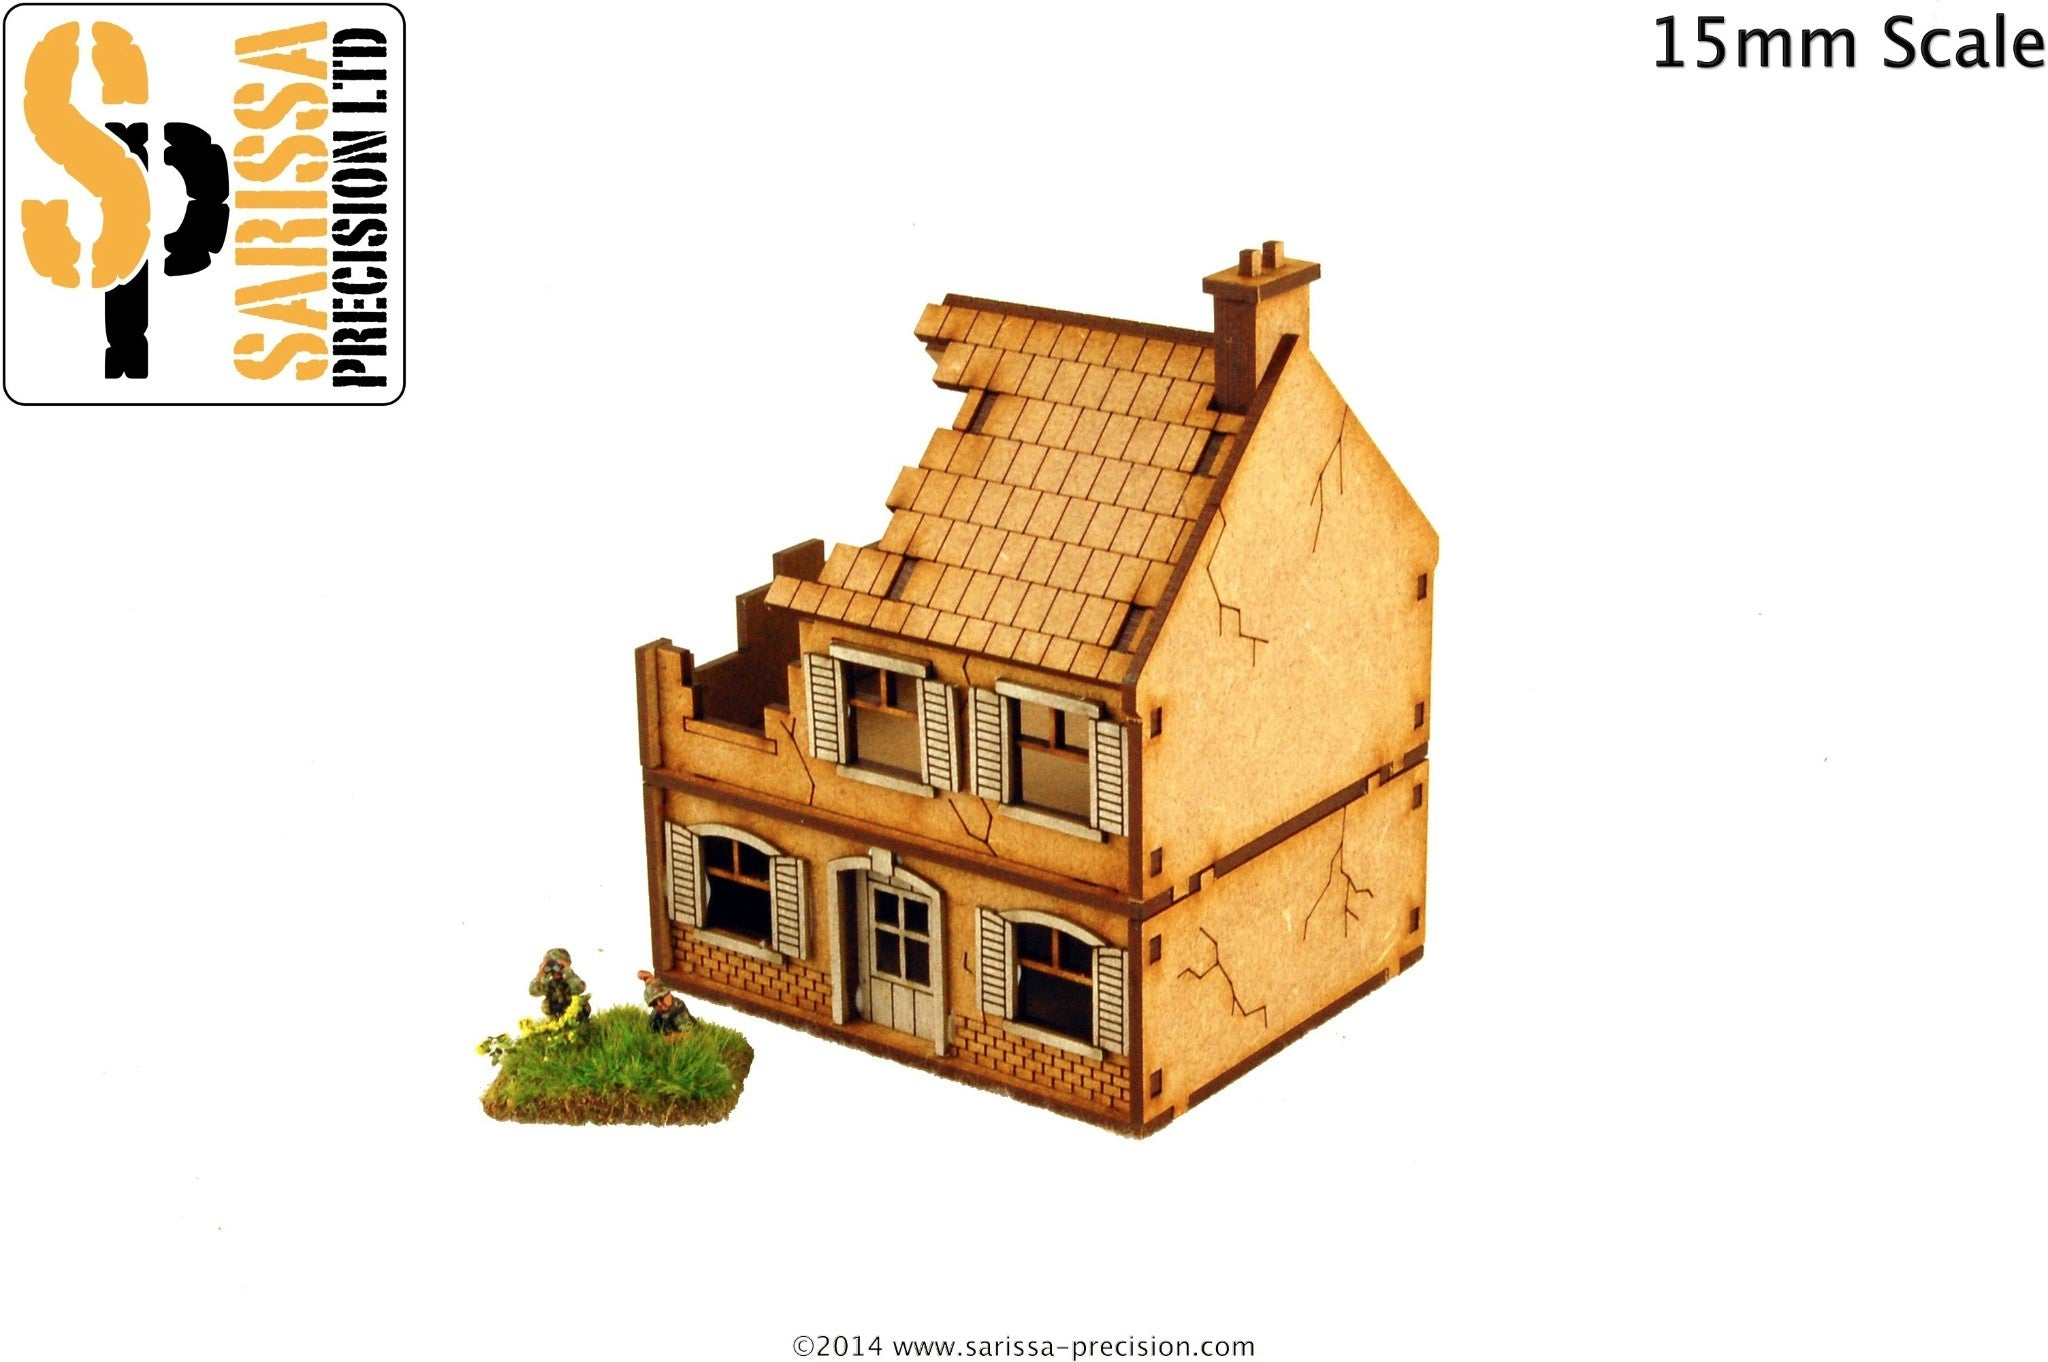 Destroyed Farmhouse - 15mm